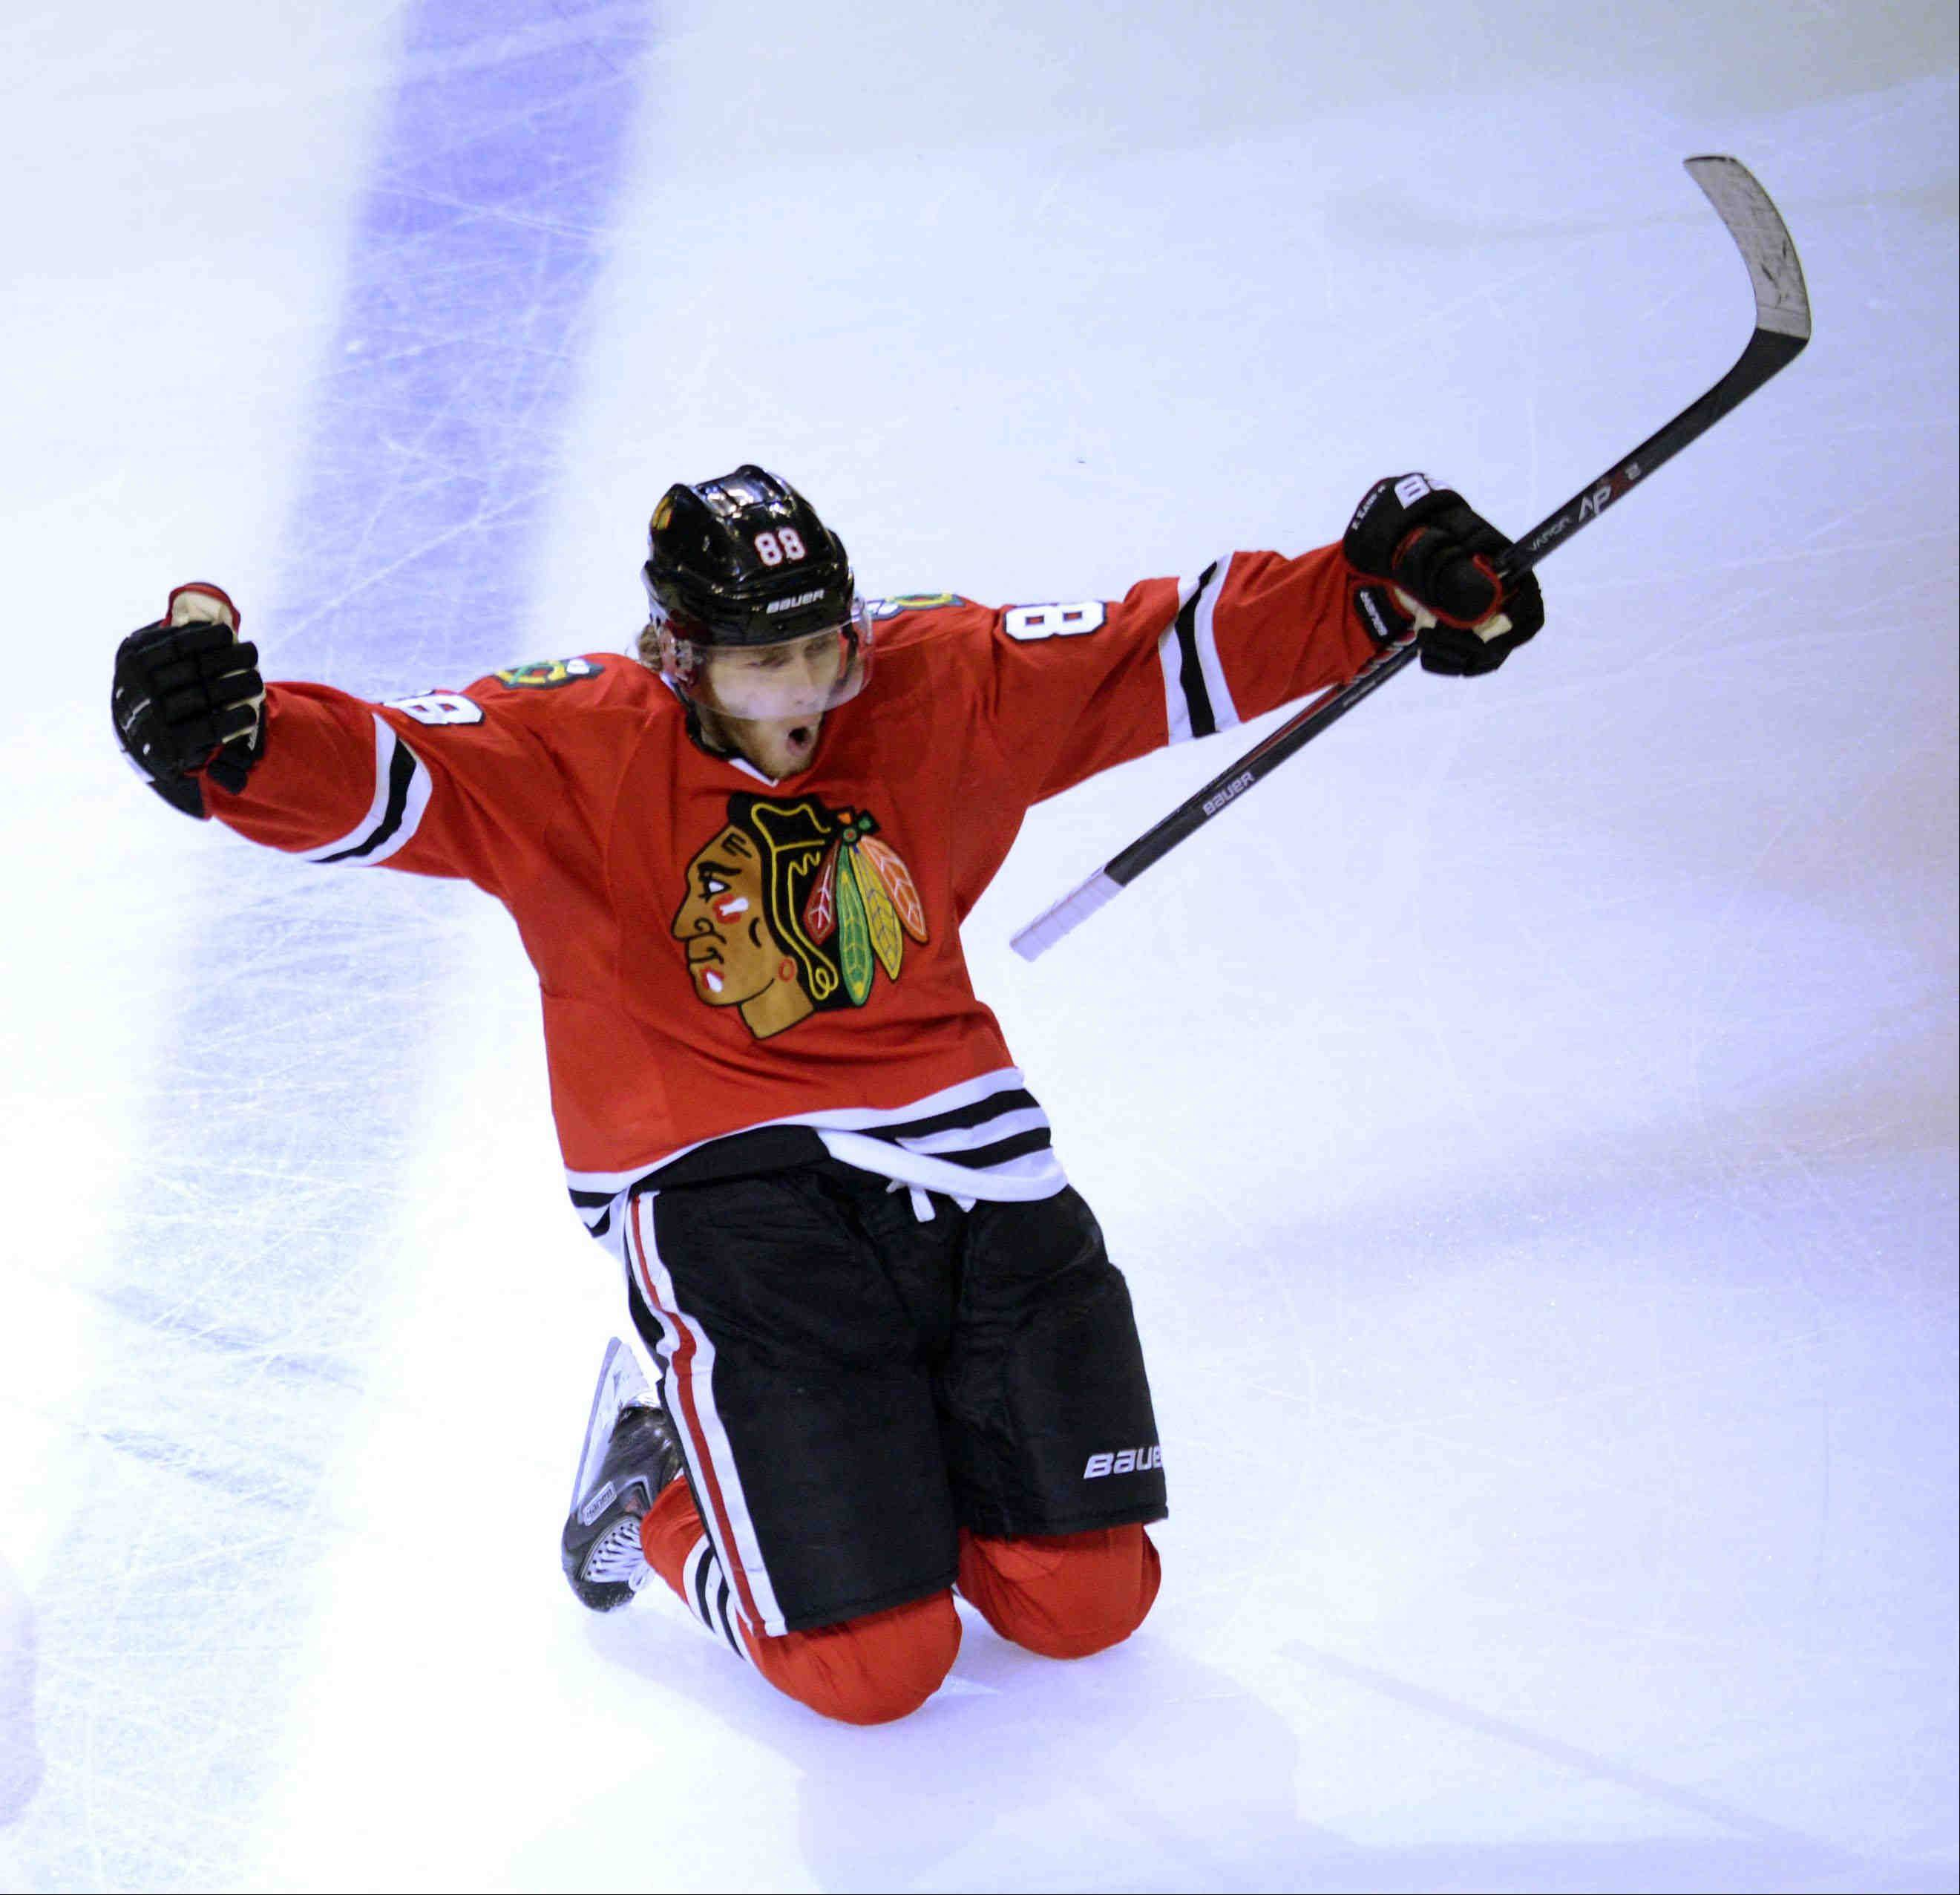 Blackhawks forward Patrick Kane celebrates after scoring in double overtime to win Game 5 Saturday at the United Center in Chicago.